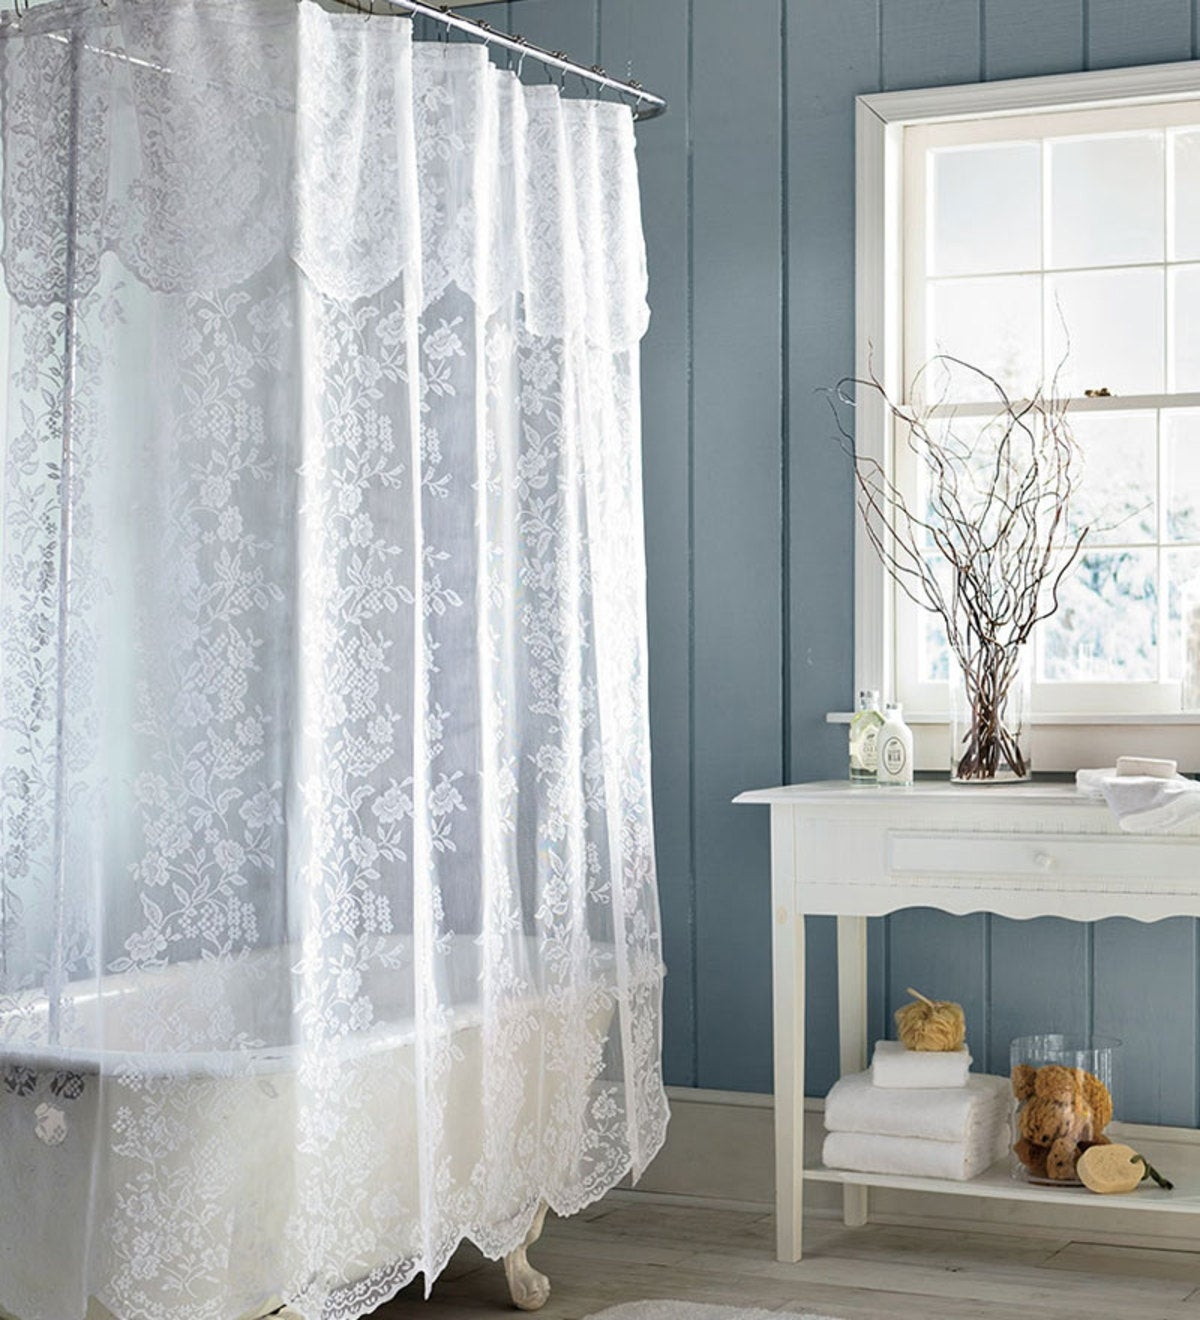 Charmant Lace Shower Curtain 1